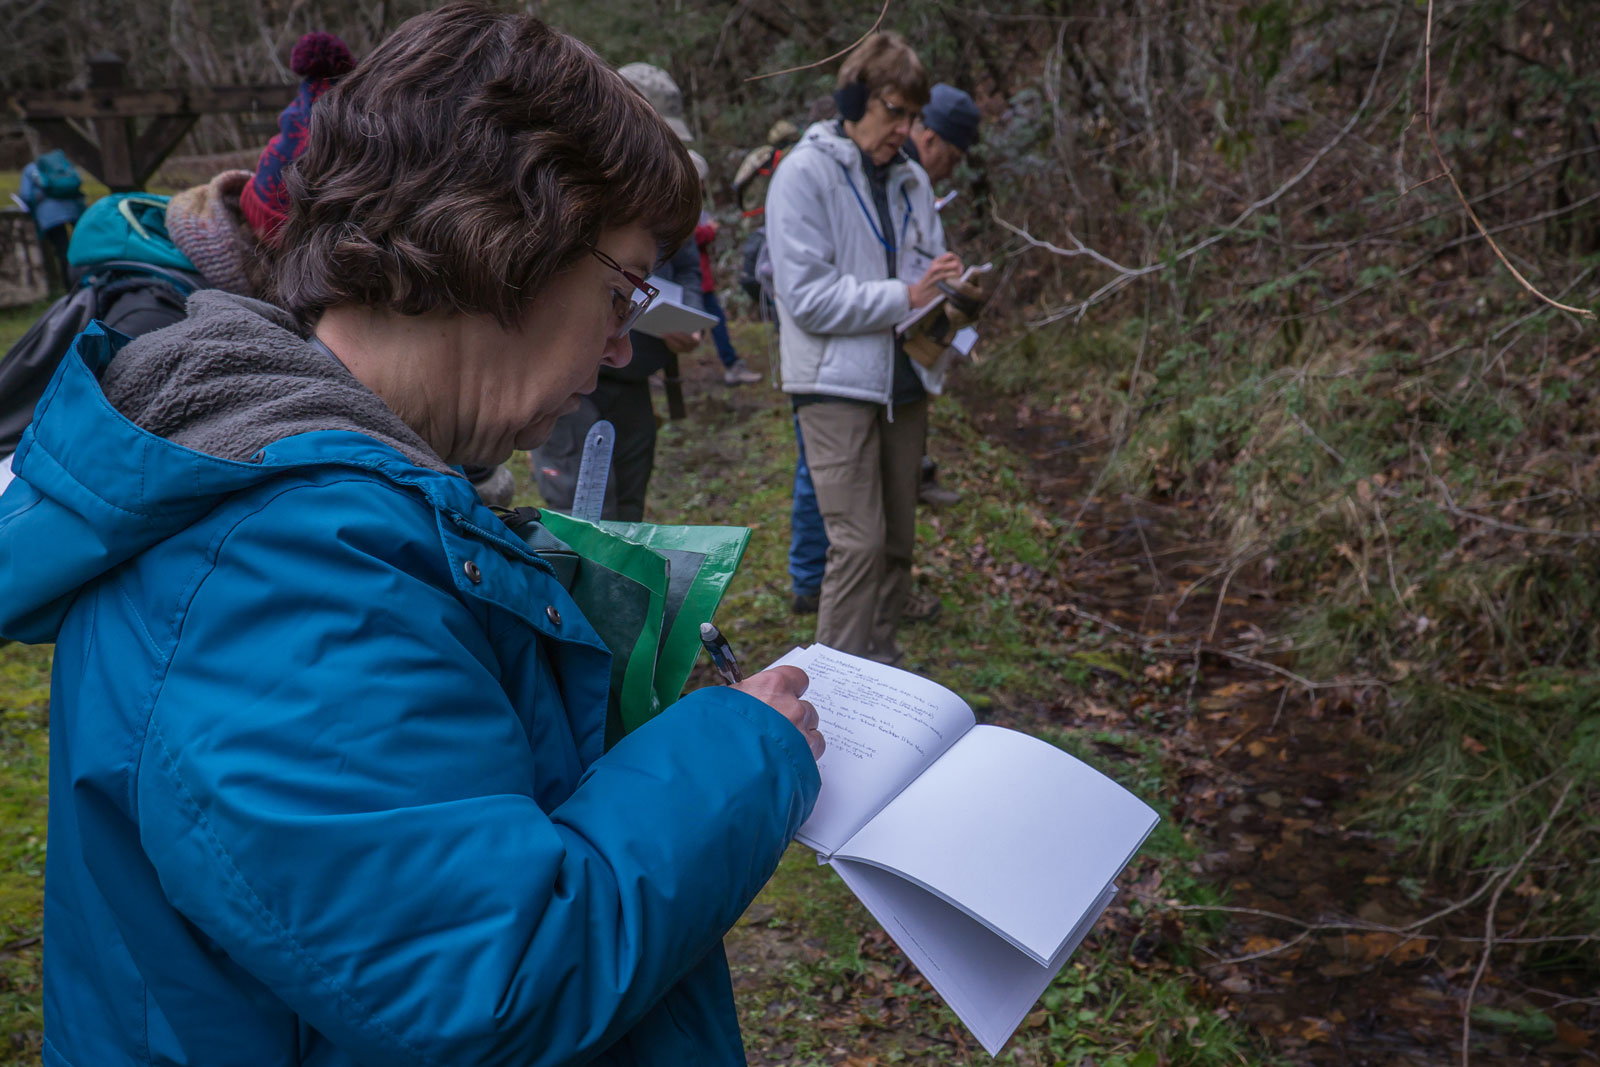 Naturalists observe a water source in the Smokies and make notes in their nature journals